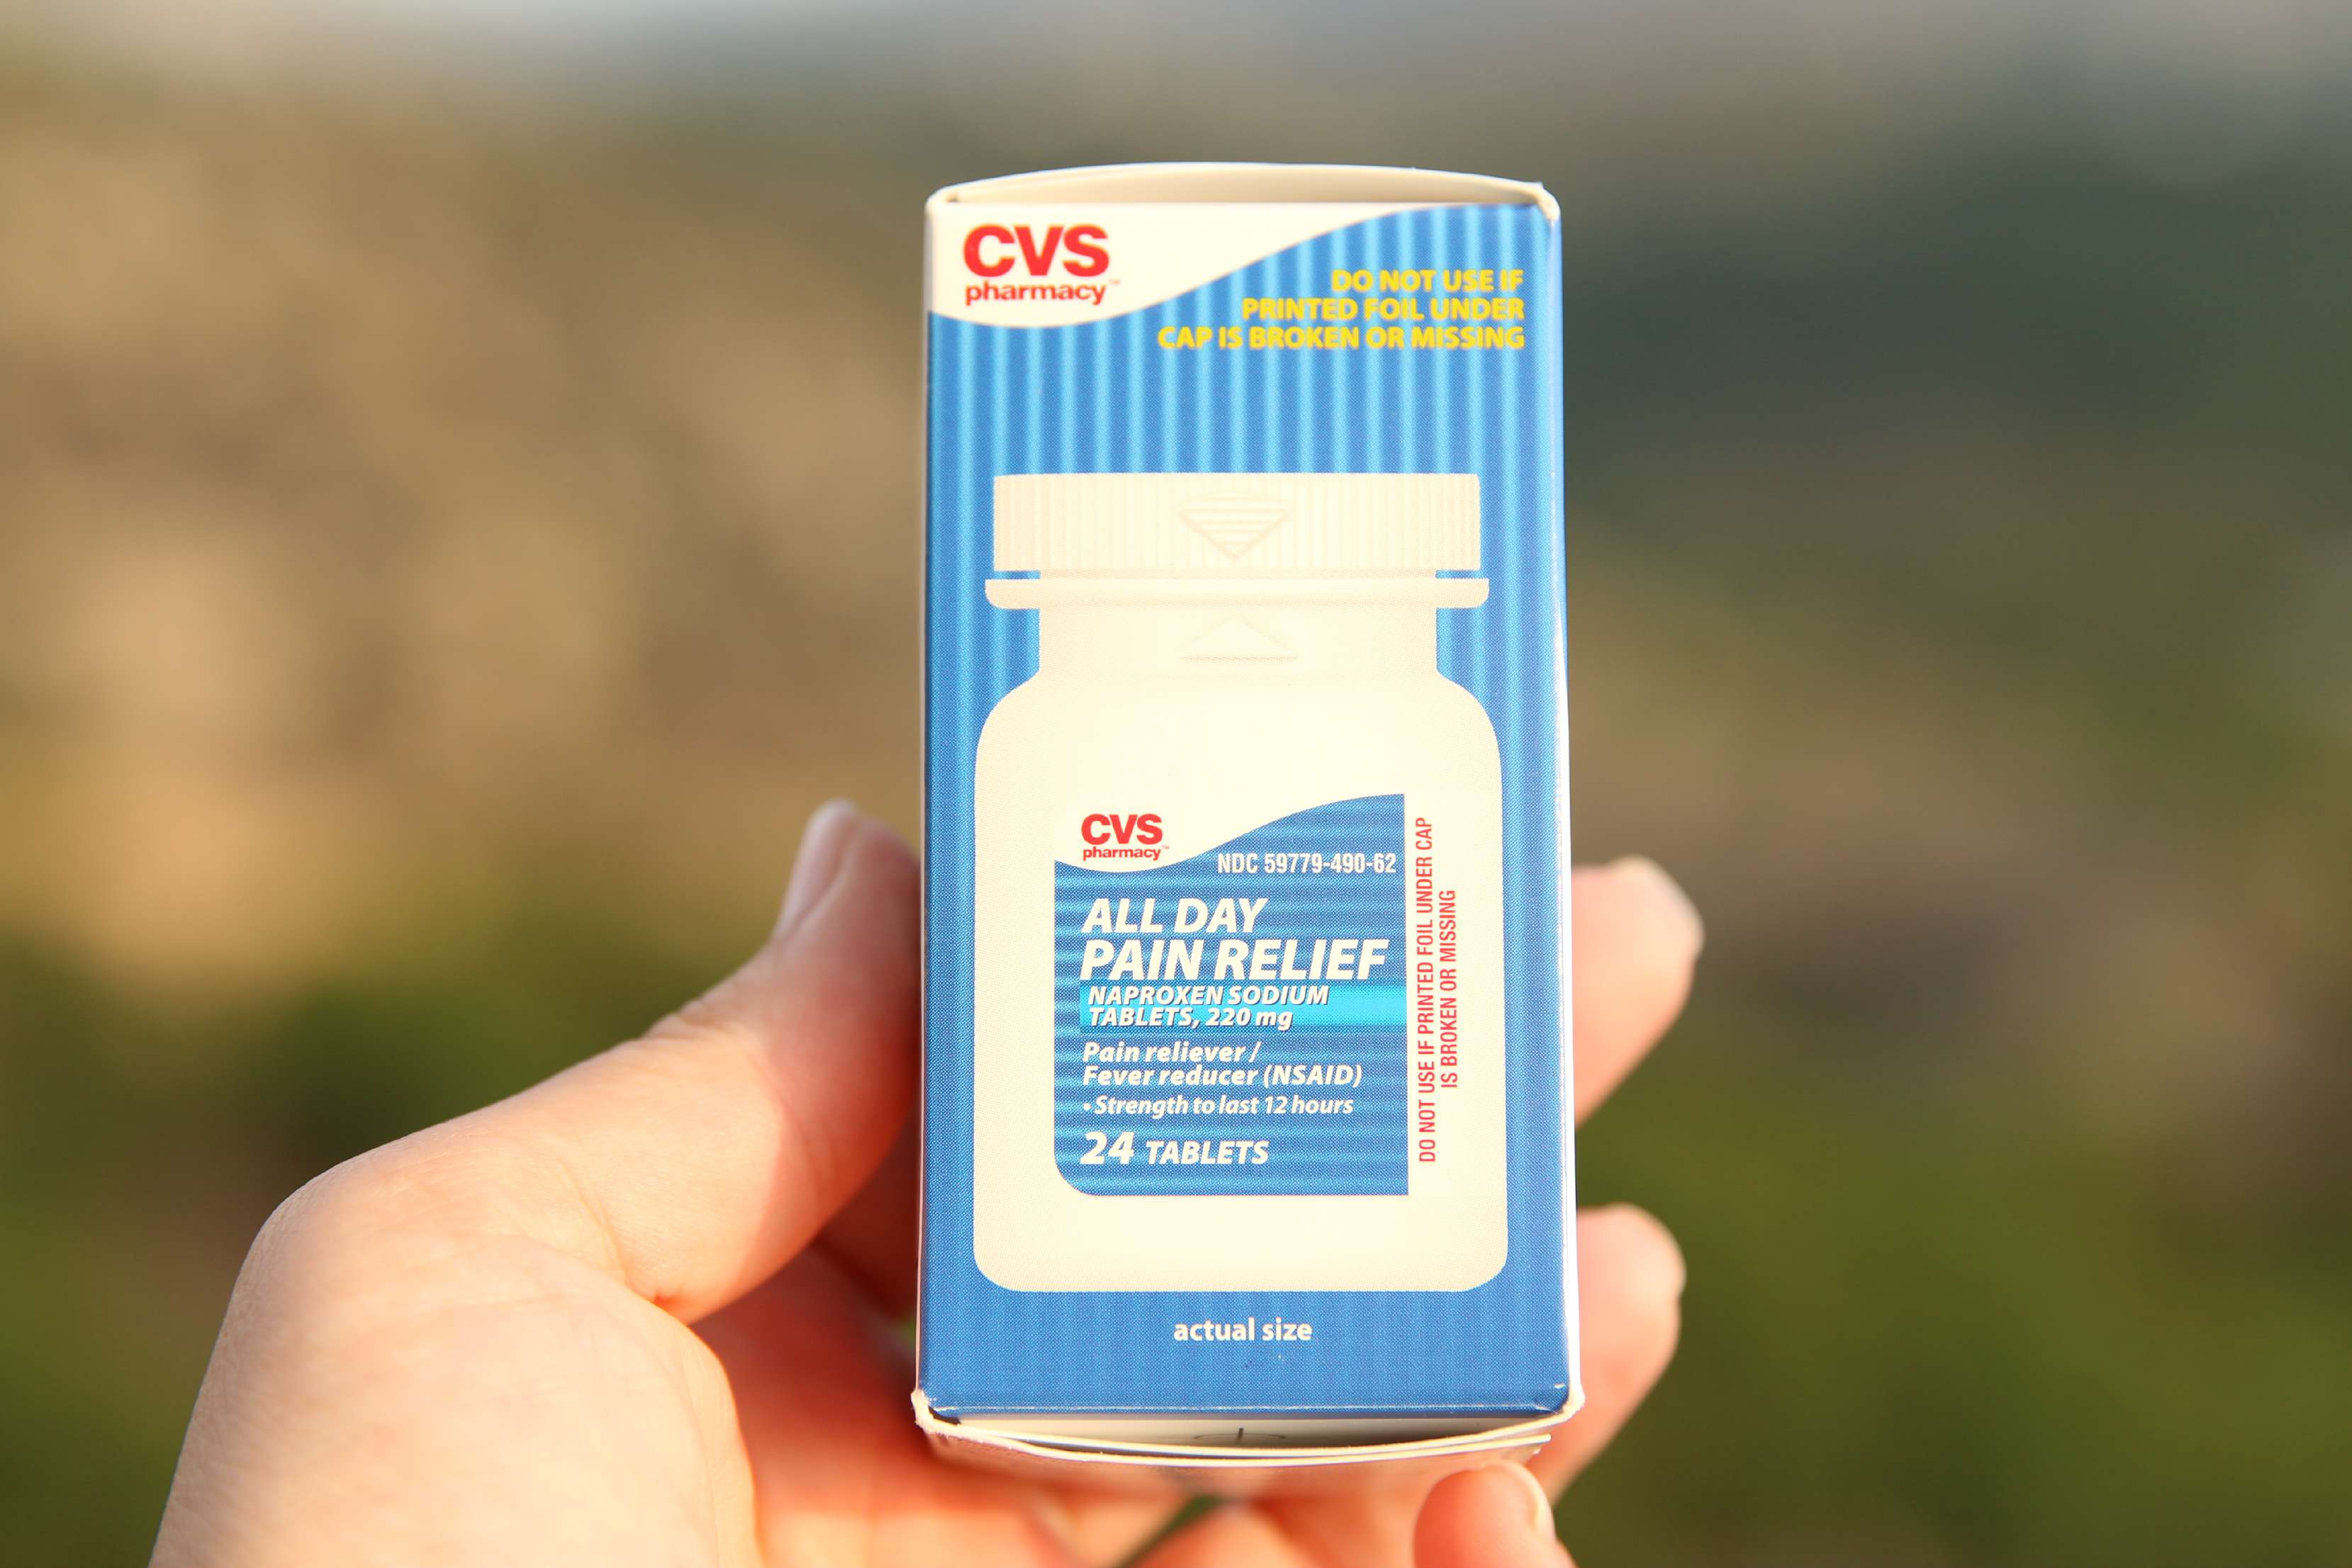 all day pain relieve cvs